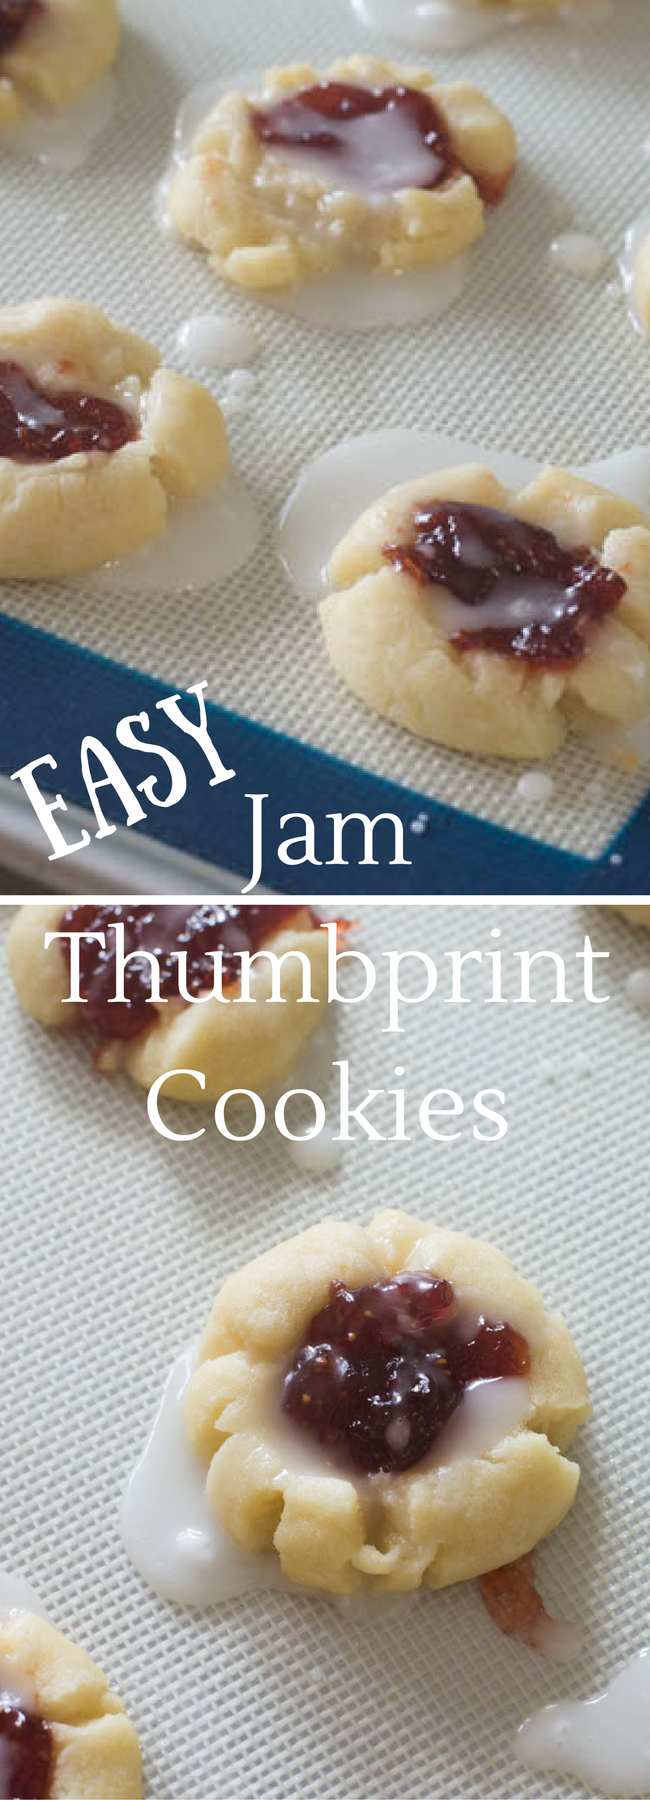 The best thumbprint cookie recipe / thumbprint cookies recipe thumbprint cookies easy / thumbprint cookies jam /thumbprint cookies with icing / thumbprint cookies /thumbprint cookies... / thumbprint cookies and more!